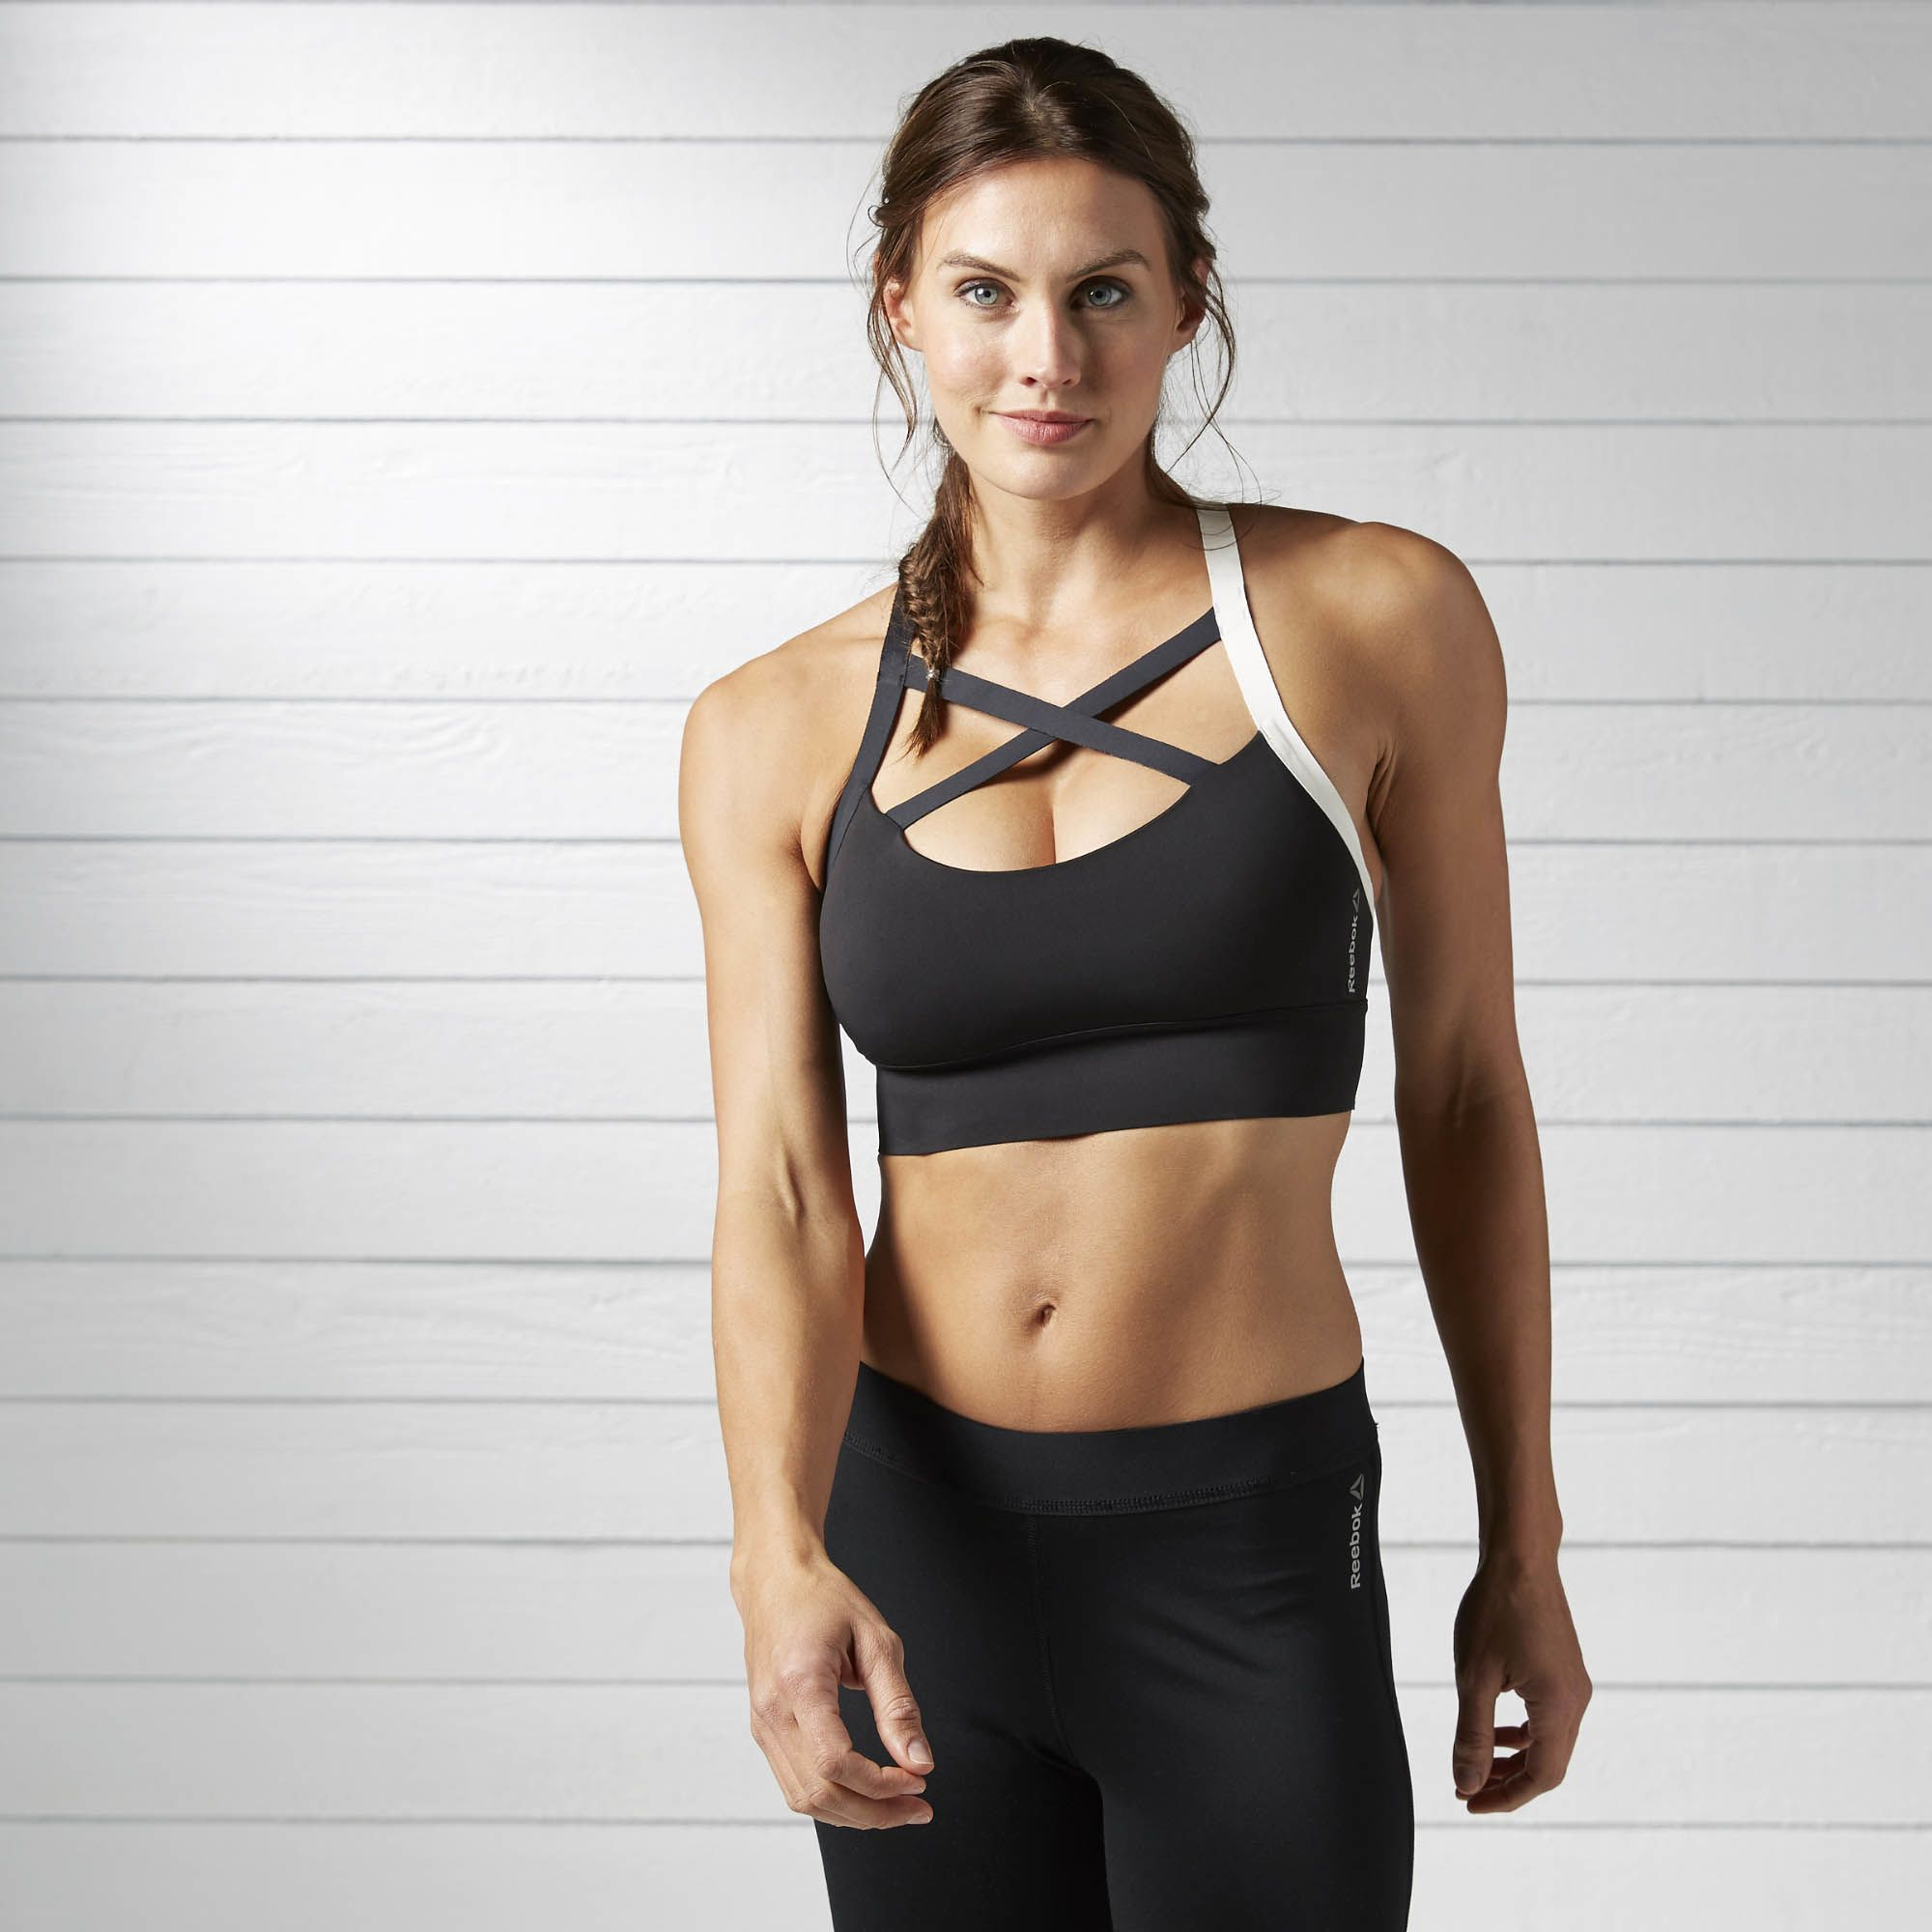 ede7313b3ff7d Cool Workout Wear To Inspire You To Keep Your New Year s Resolutions ...